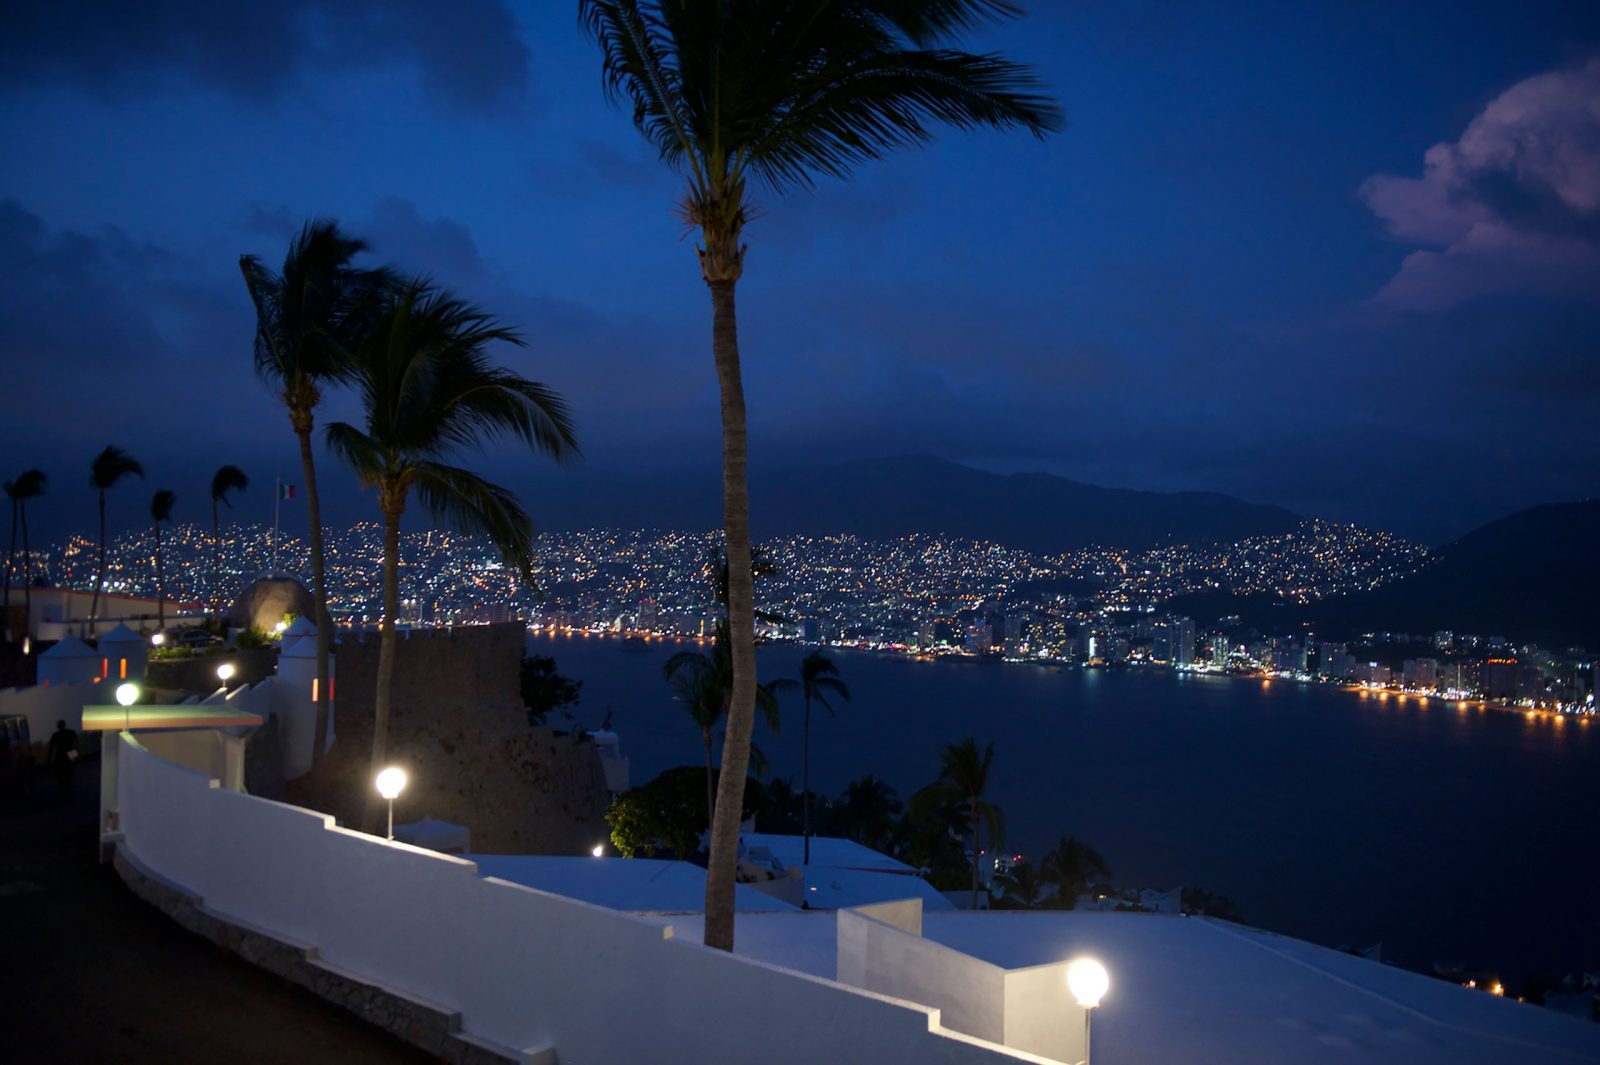 Night at Acapulco